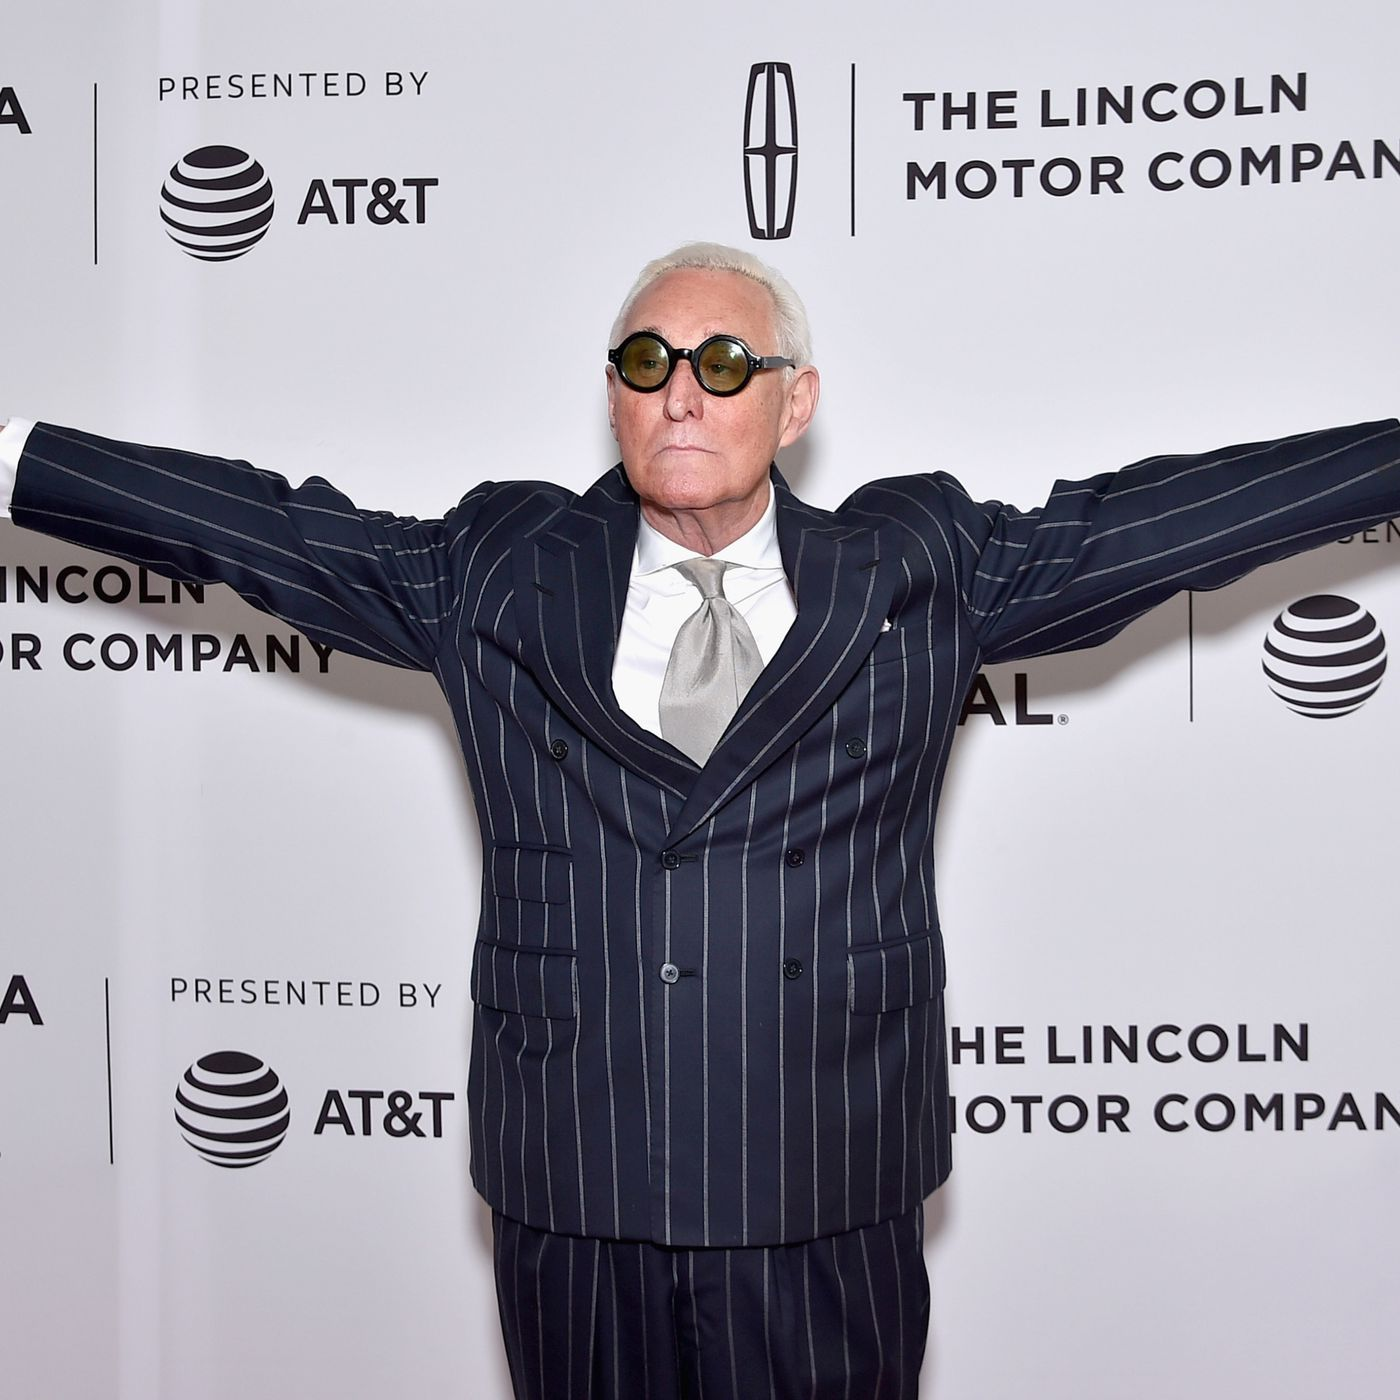 vox.com - Peter Kafka - Twitter has permanently booted Roger Stone for tweeting that CNN's Don Lemon should be 'punished'